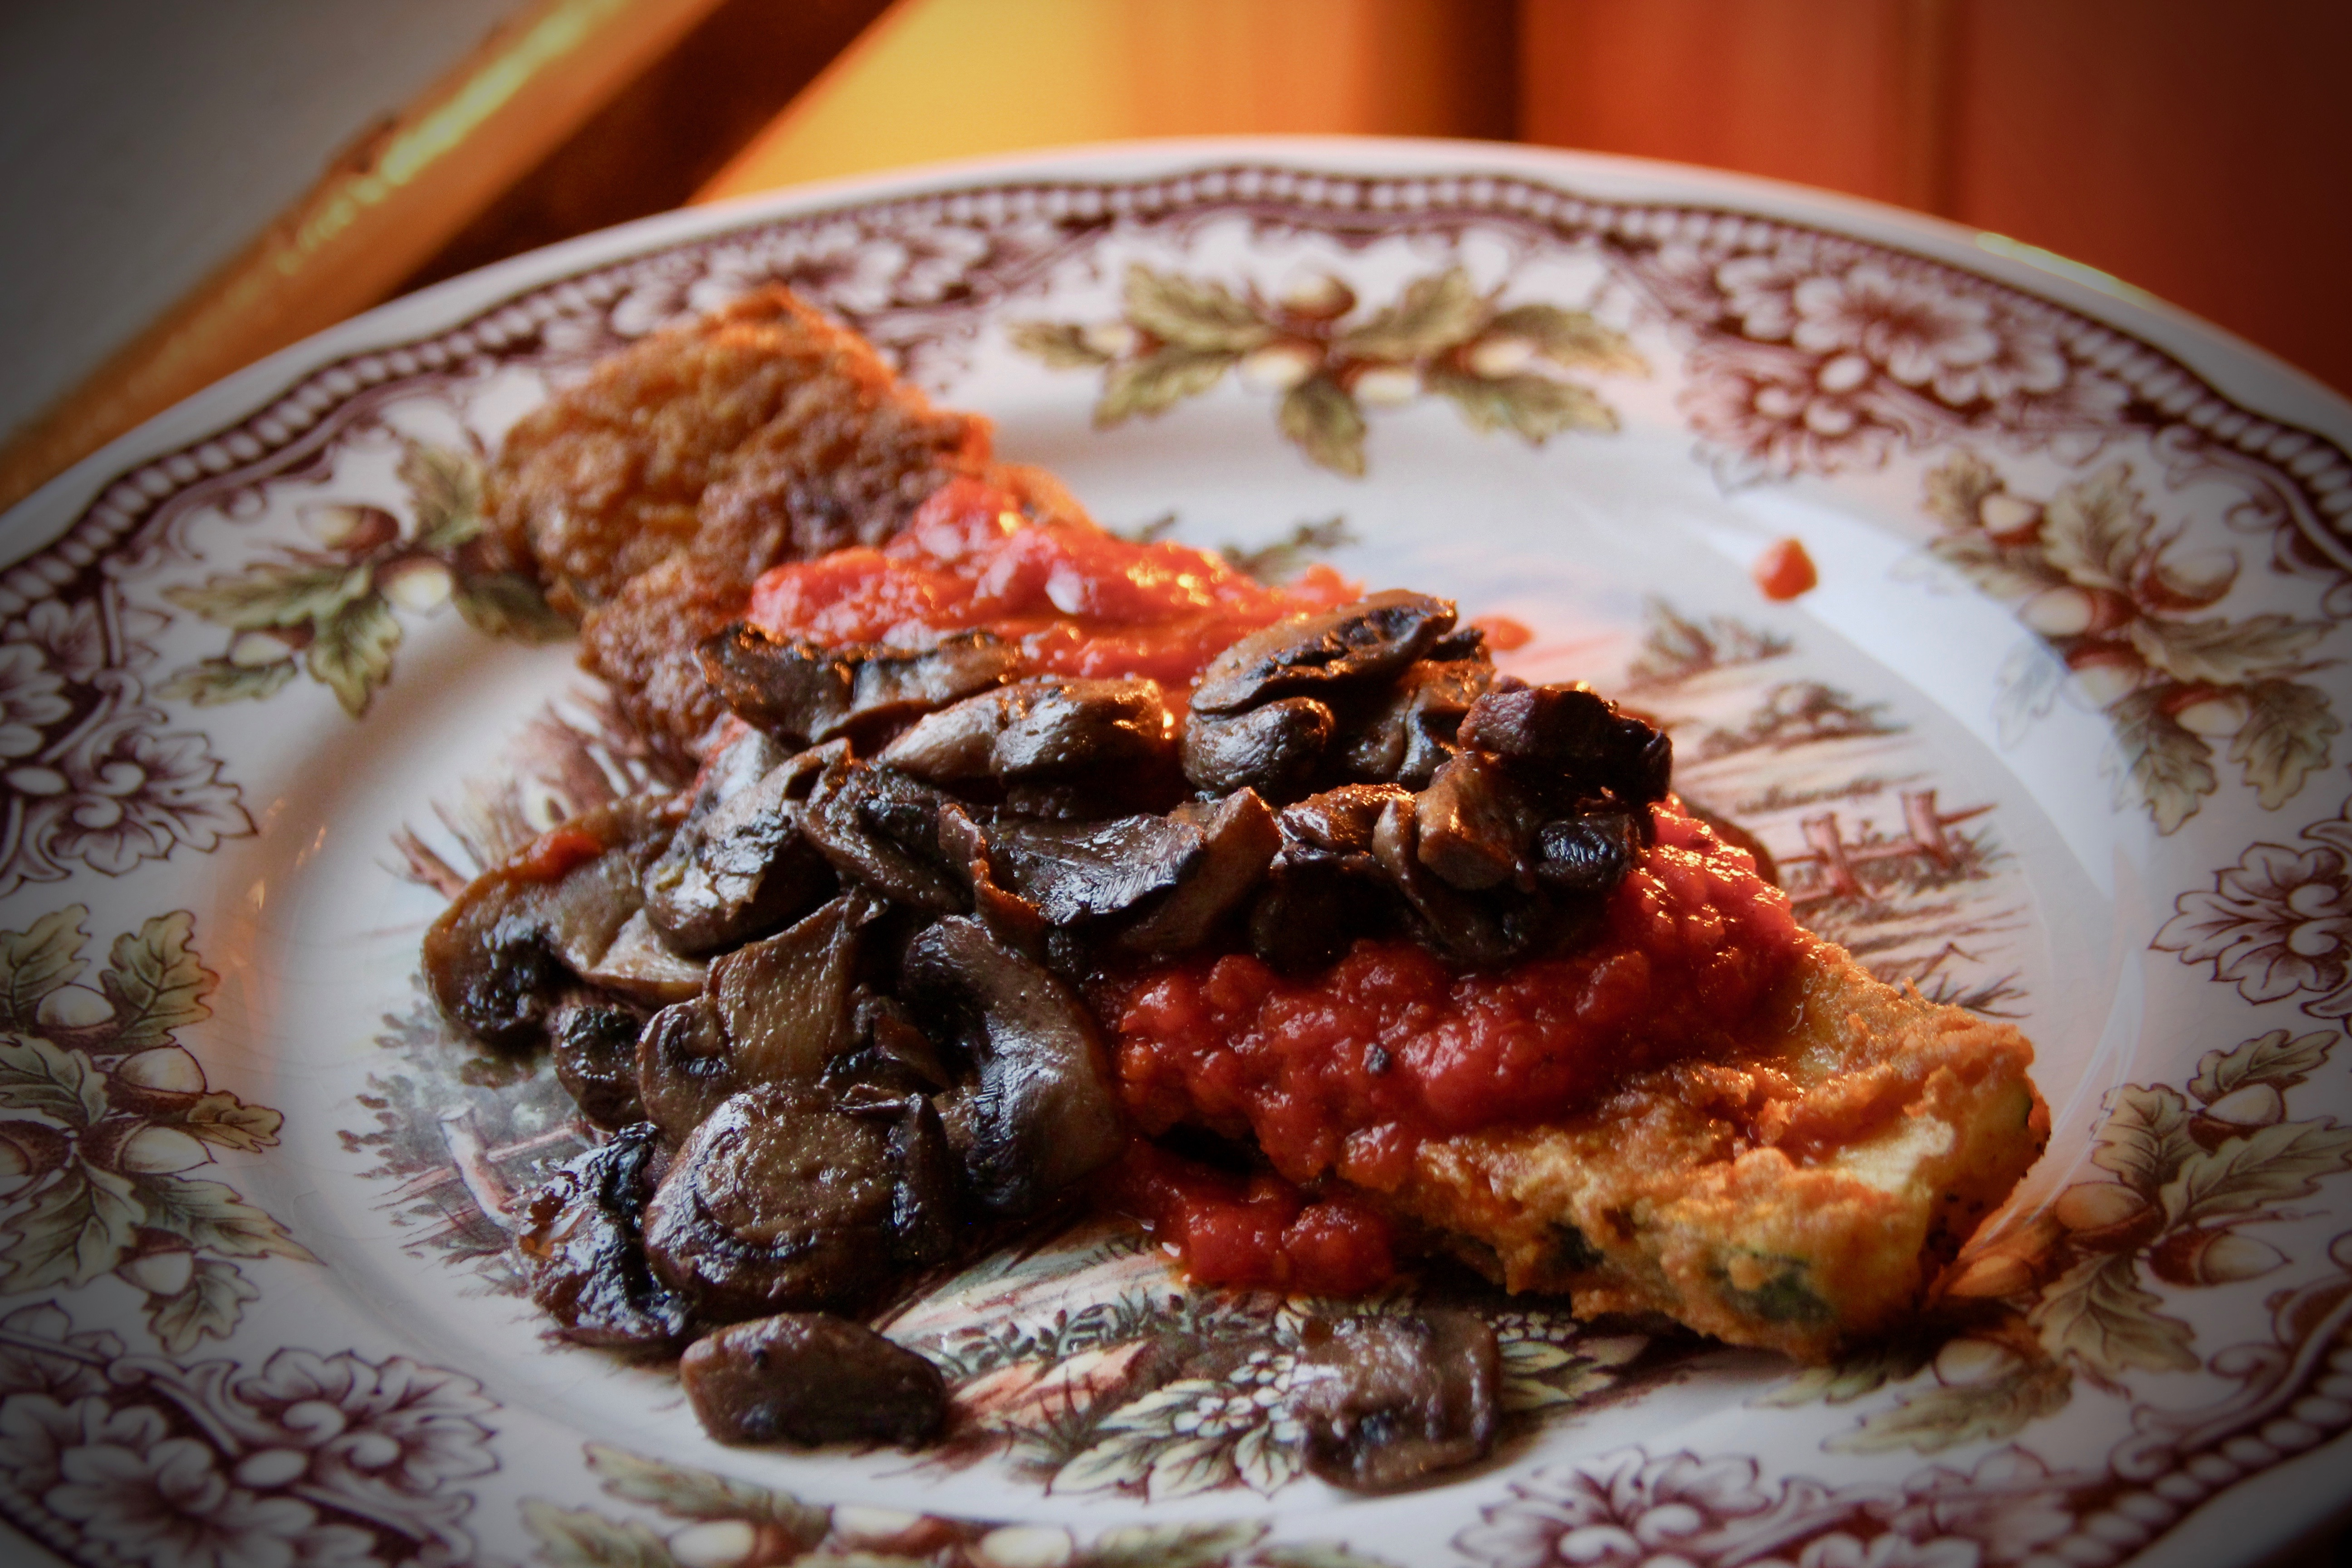 Easy recipe, zucchini, mushrooms, tomato sauce, easy weekday meal, French Cuisine